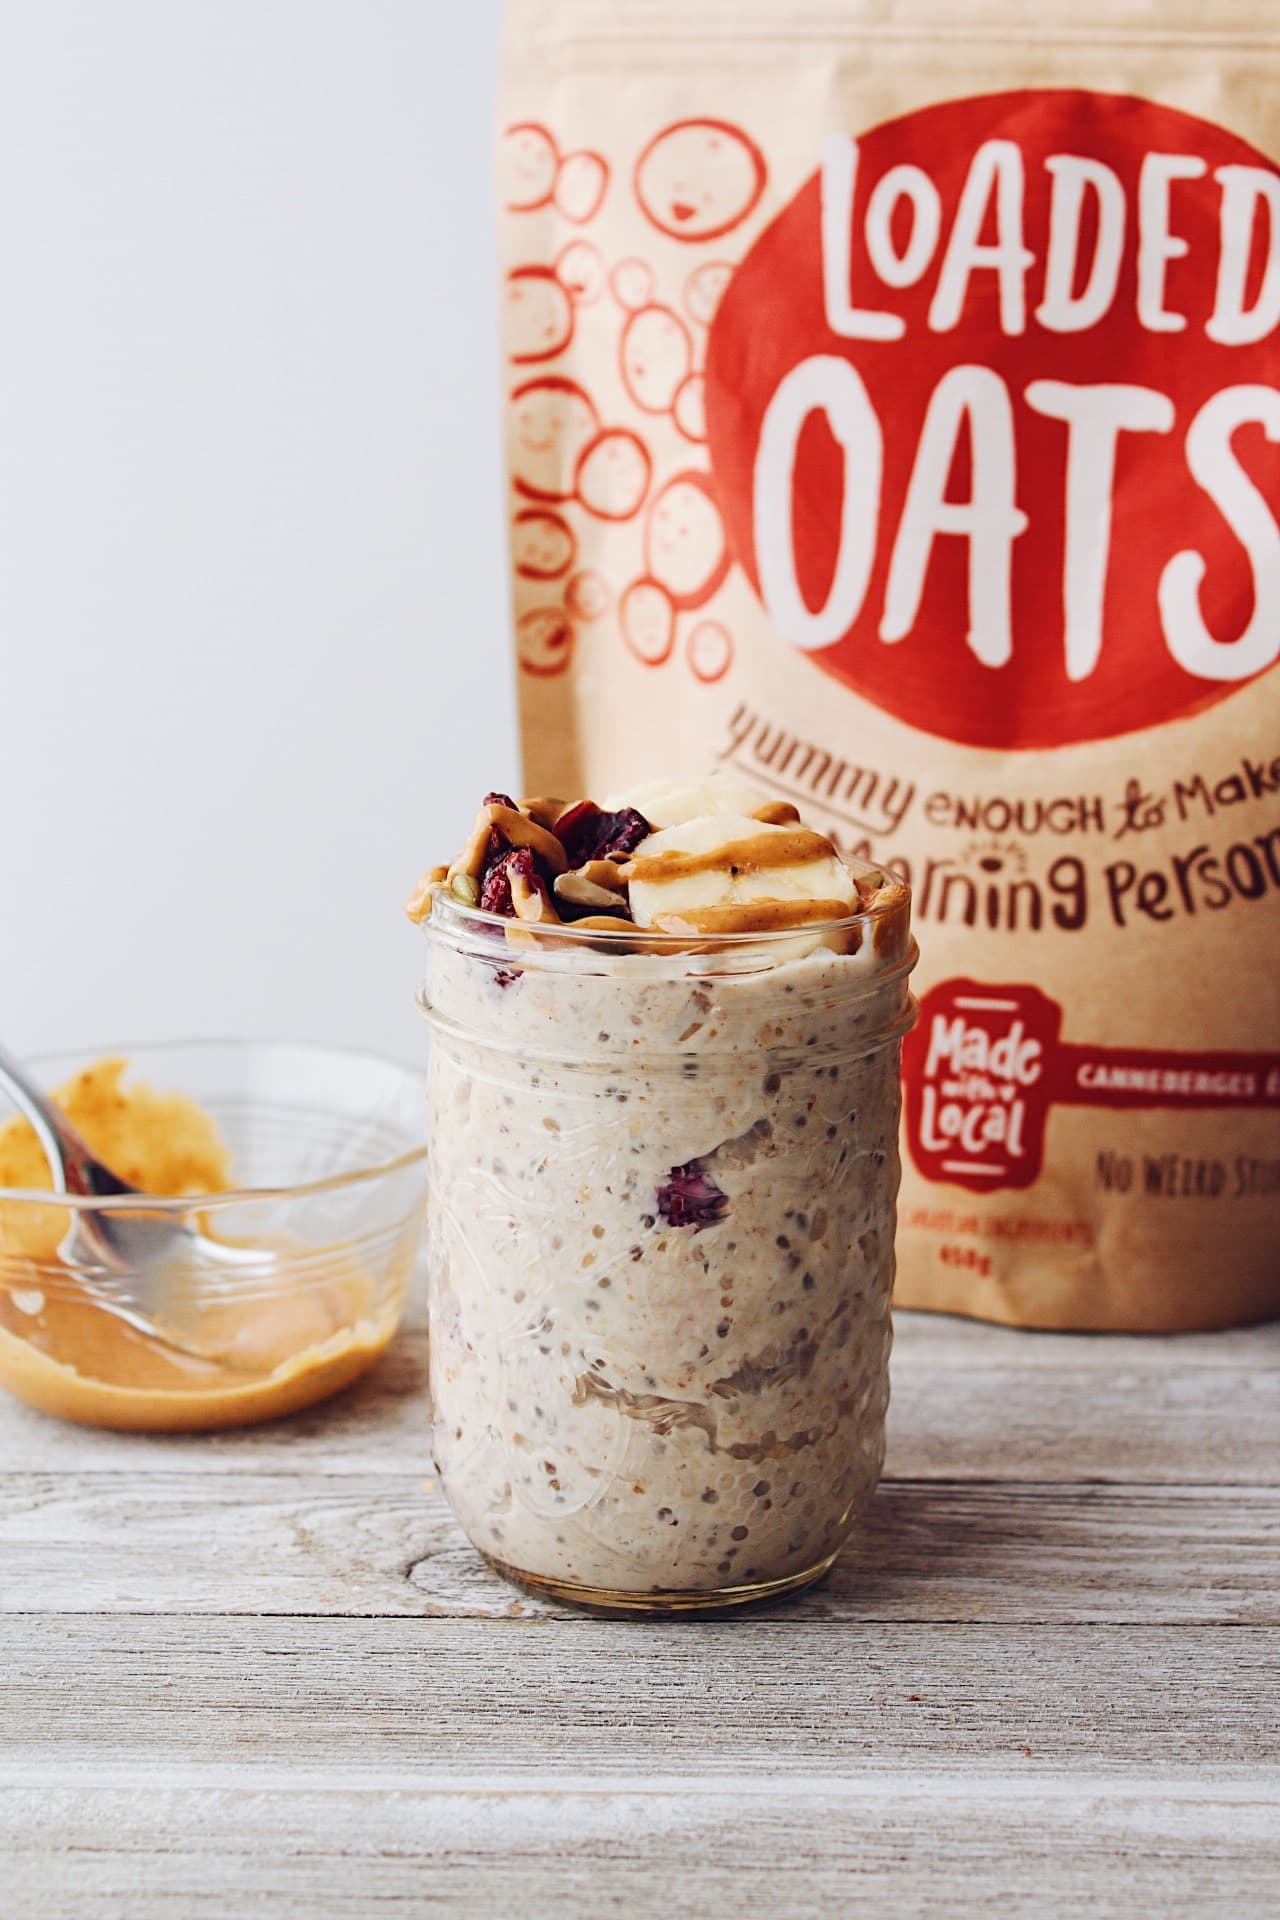 5 Easy Breakfast Ideas to Fuel Your Day